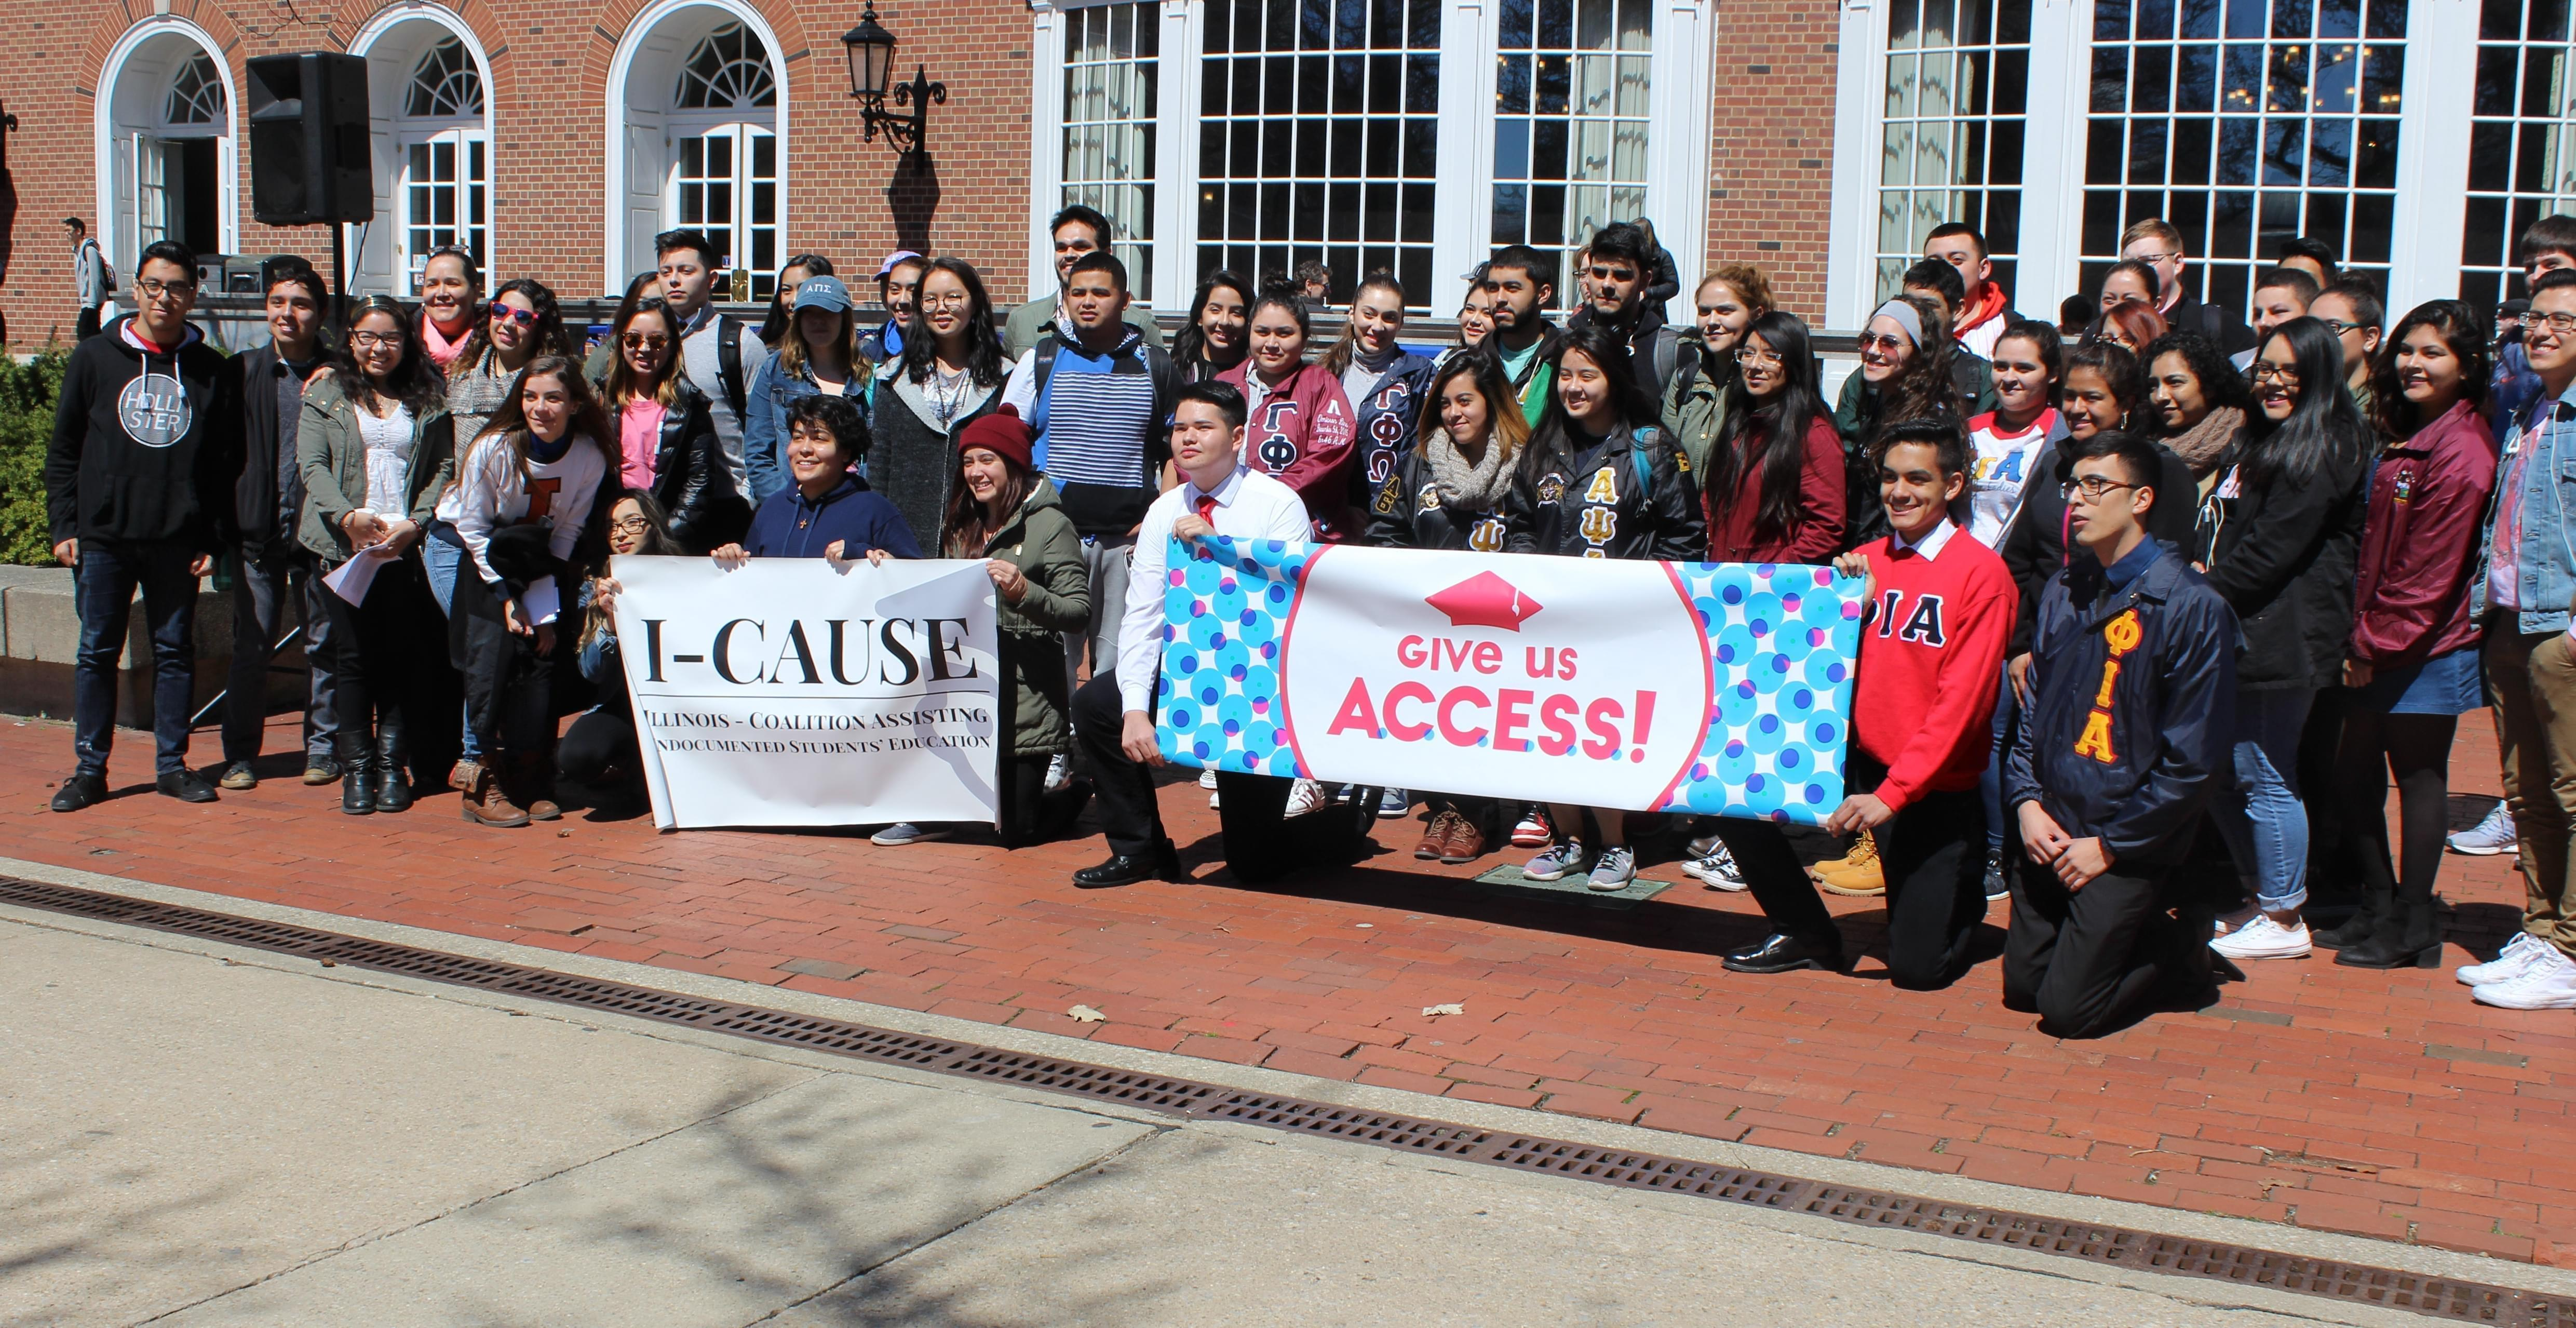 Guest speakers and supporters at the I-CAUSE rally at the U of I Urbana campus